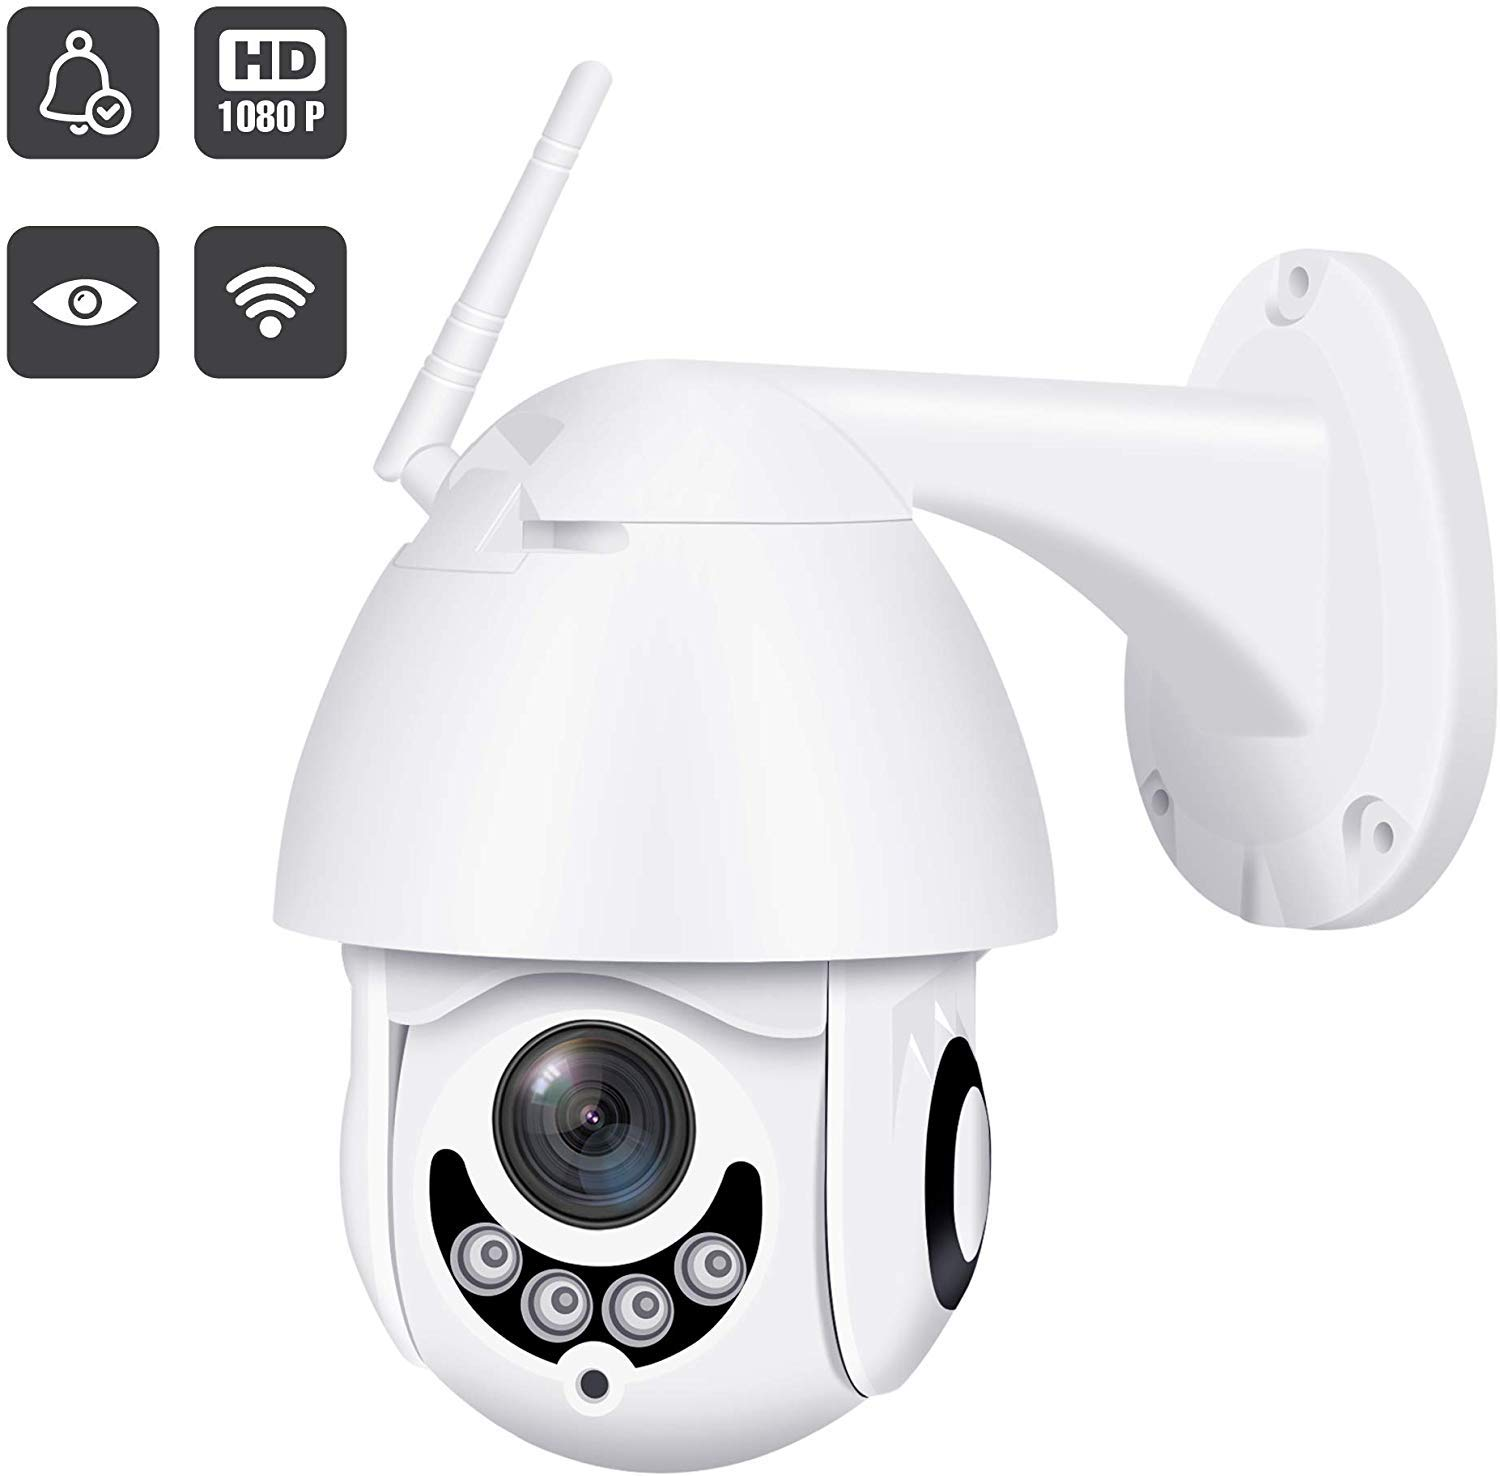 2019 Upgraded Full HD 1080P Security Surveillance Cameras Outdoor Waterproof Wireless PTZ Camera with Night Vision - IP WiFi Cam Surveillance Cam Audio Motion Activated (Pearl White)